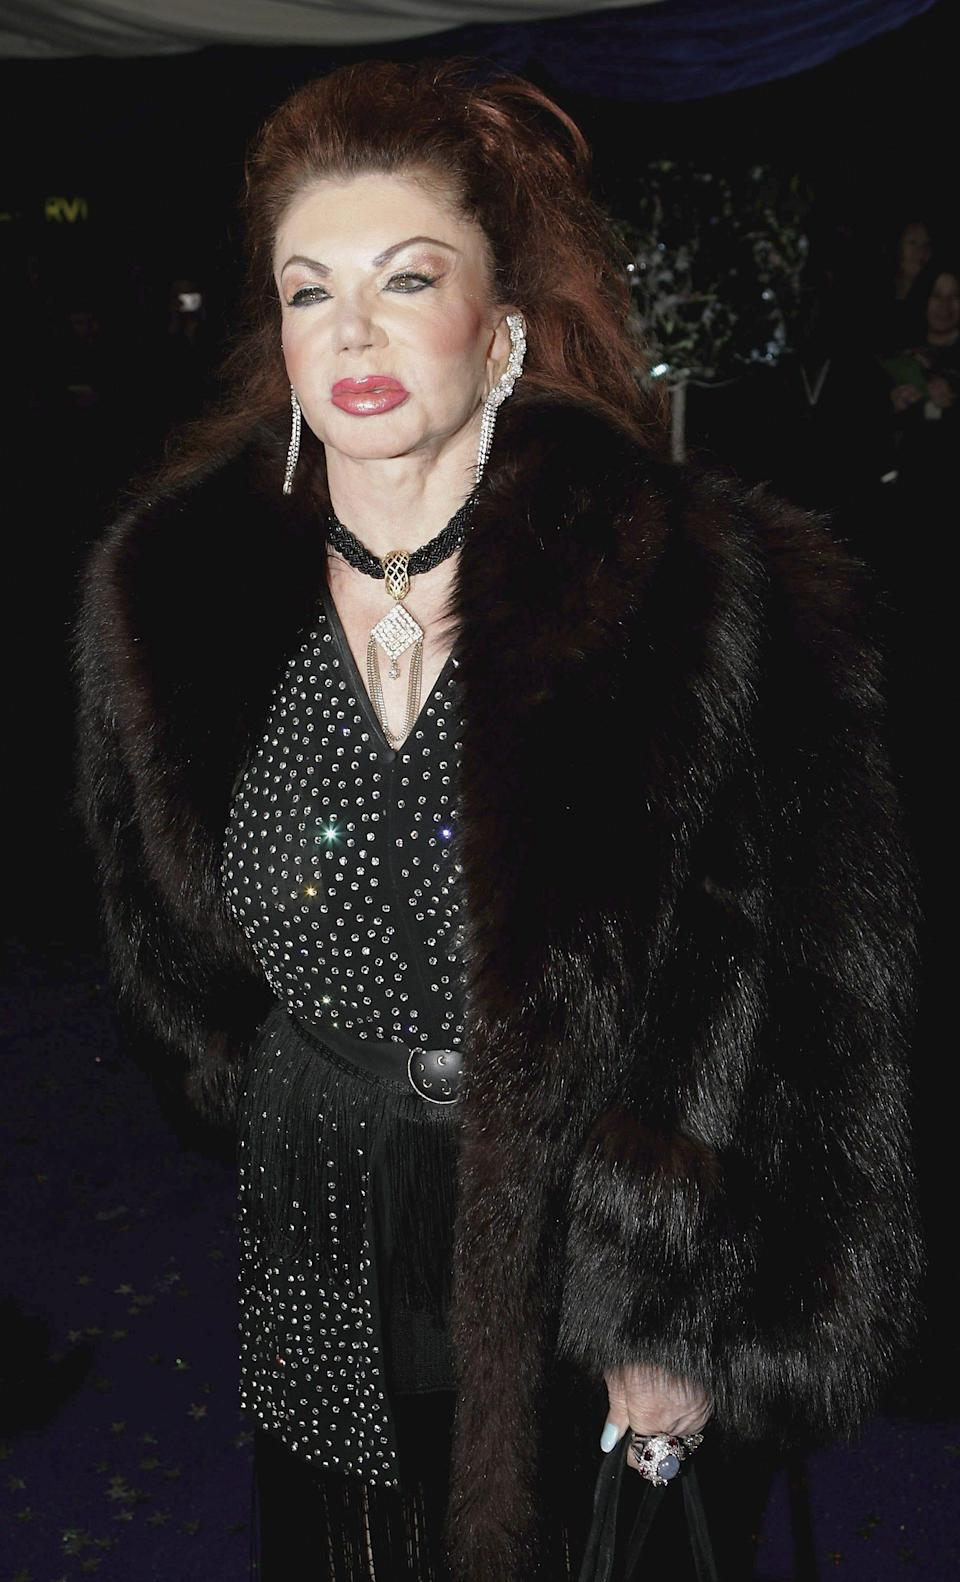 Jackie Stallone, astrologer, early GLOW (Gorgeous Ladies of Wrestling) promoter and Sylvester Stallone and Frank Stallones mother, has died at age 98.